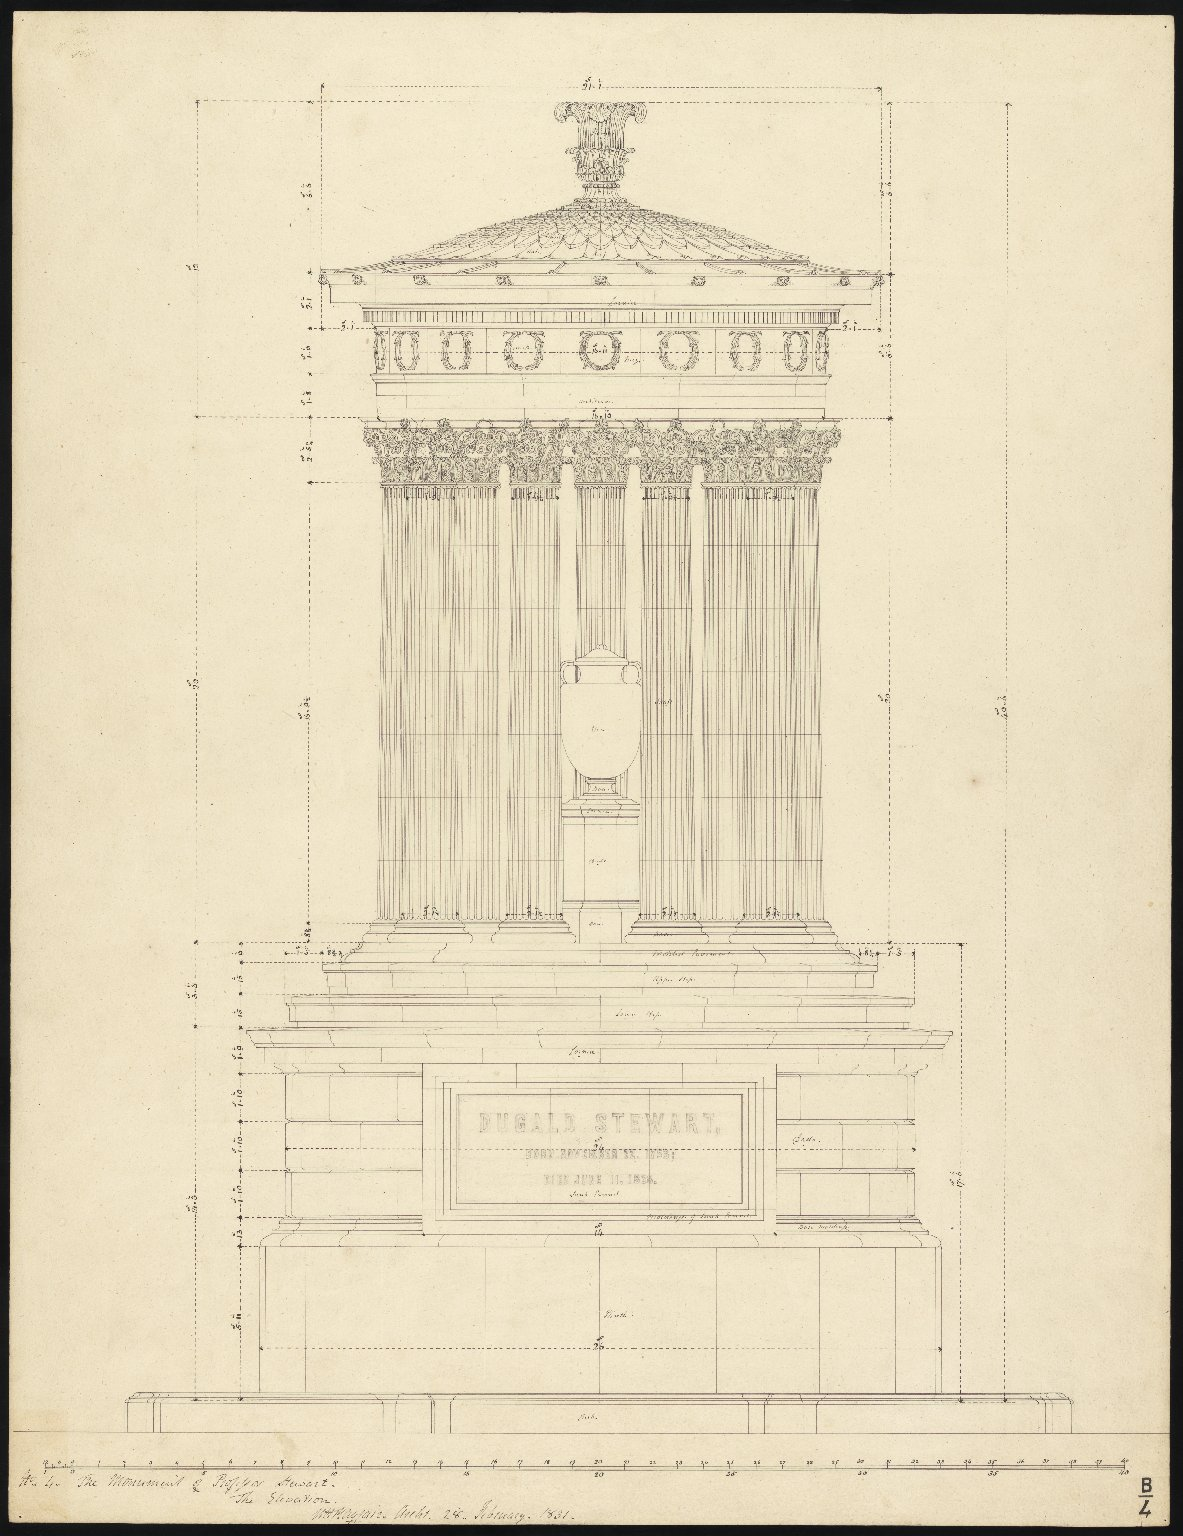 Dugald Stewart Monument, Bases and Capitals, B/4